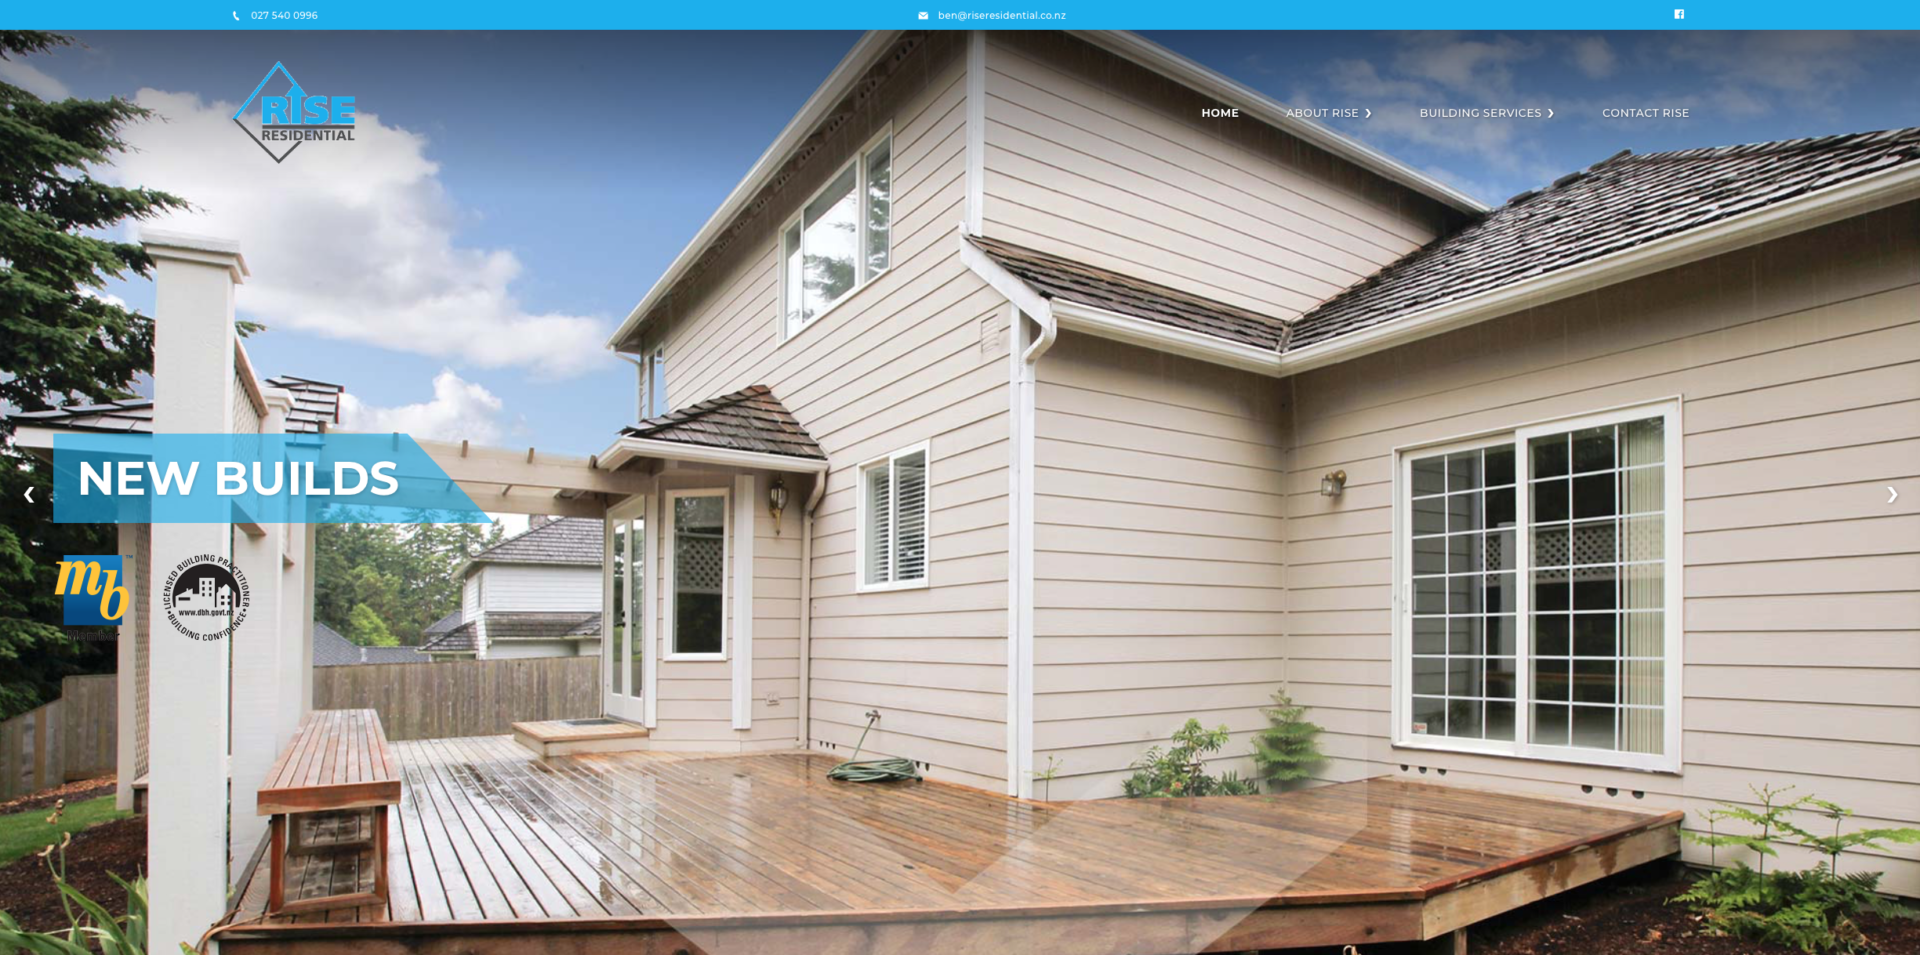 Rise Residential NZ - website design and development with a striking sky blue colour symbolizing clean precise and outdoors. Based in Rolleston, Selwyn and Christchurch. This is WordPress website design trying to show you it's not all about who has the biggest deck - every deck is different and combine that with new builds and renovations anything can be done to increase the value and x-factor of your home